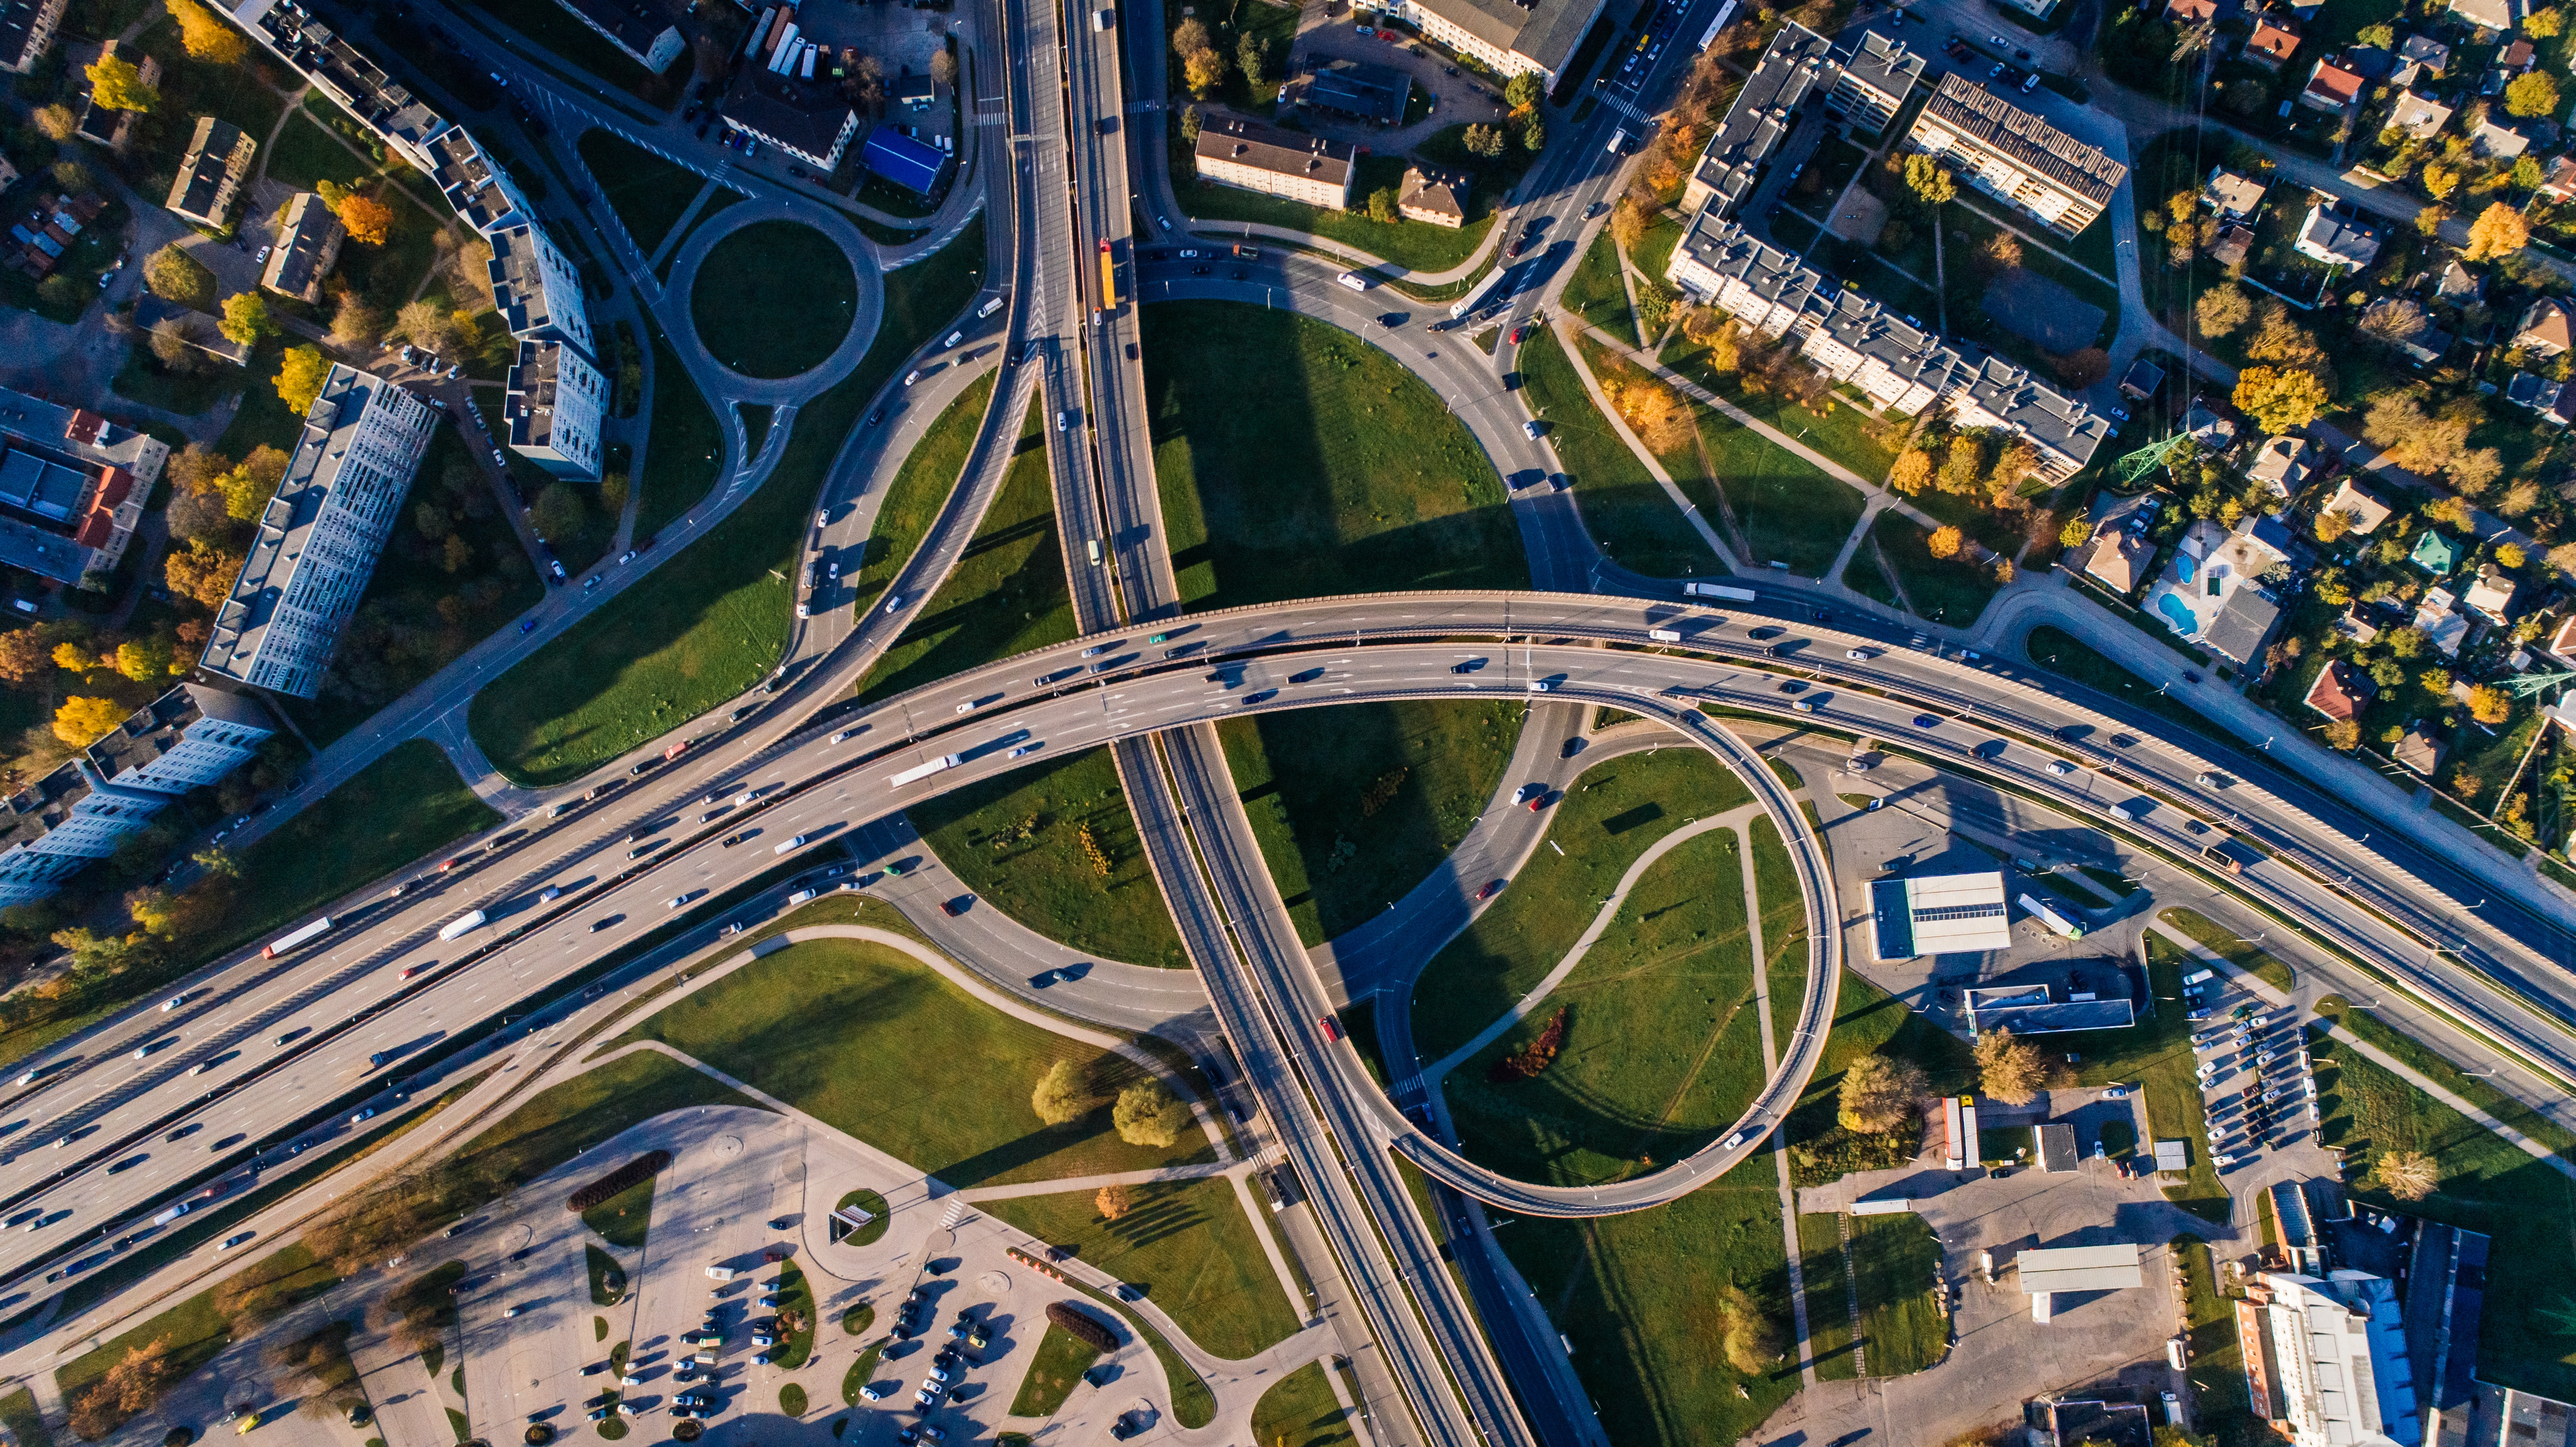 Aerial Photo of Buildings and Roads, Aerial view, Outdoors, Trees, Transportation system, HQ Photo